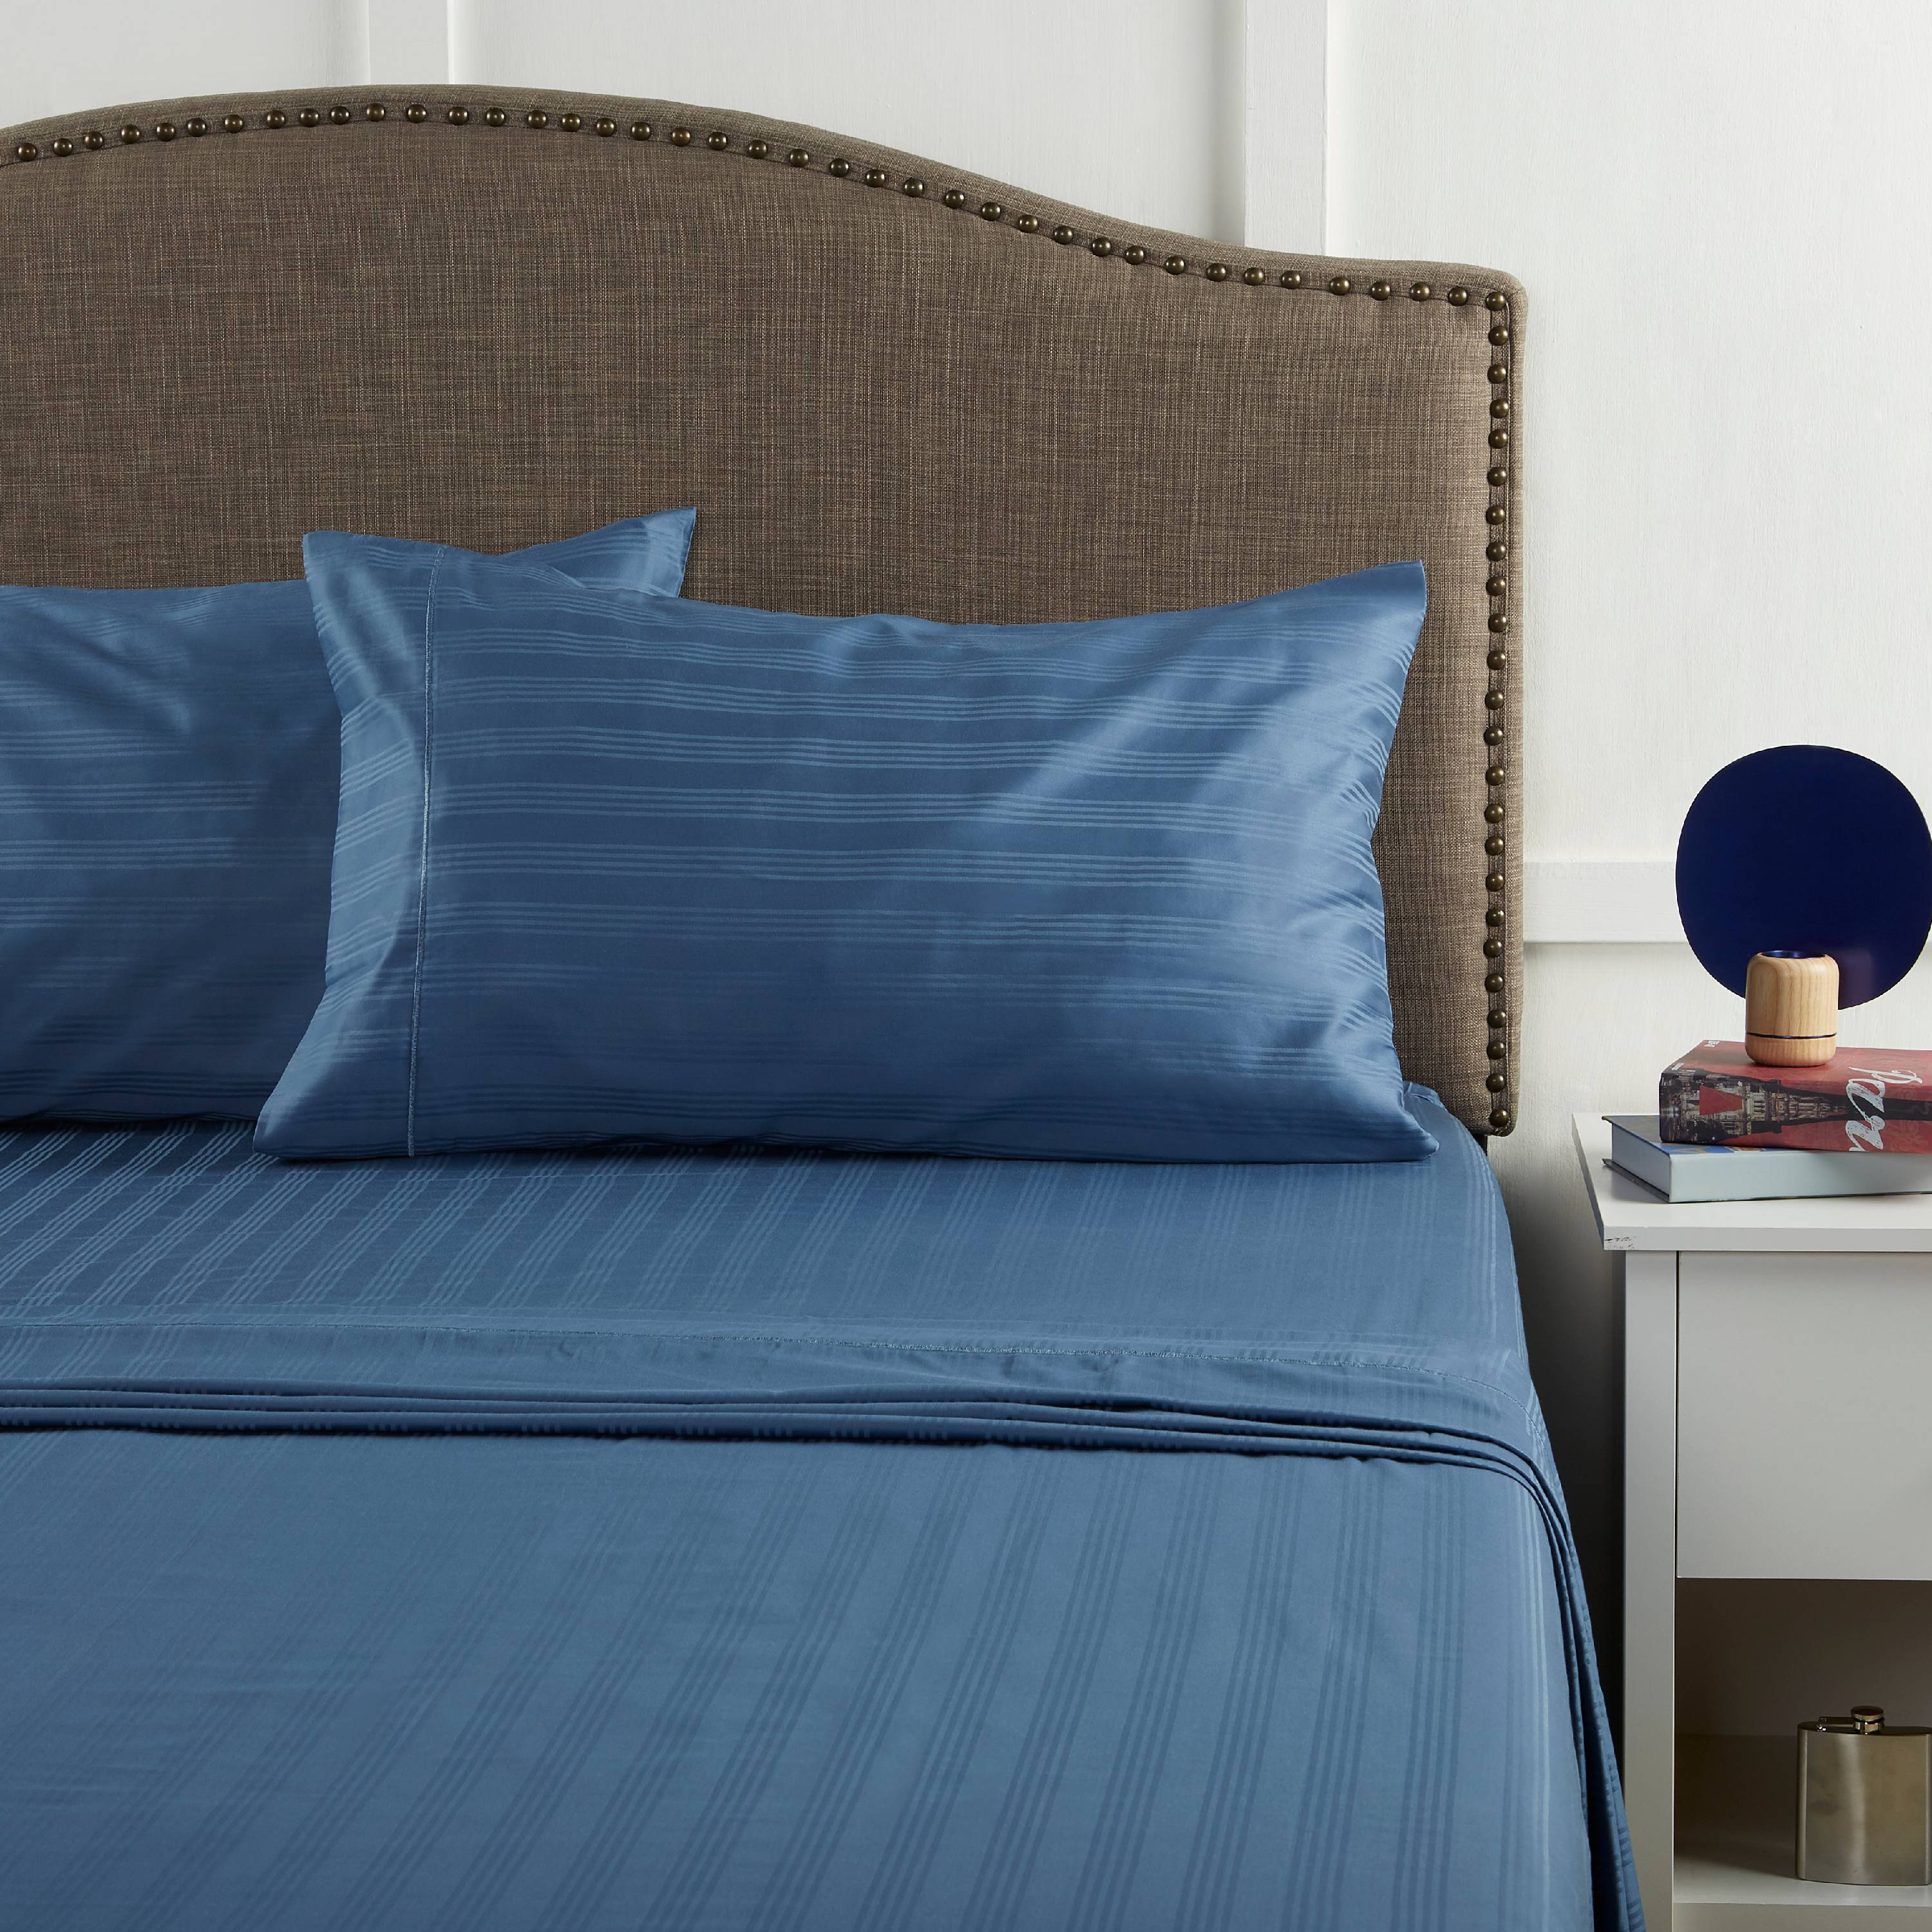 Better Home and Gardens 400-Thread-Count Aero Balance Sheet Set